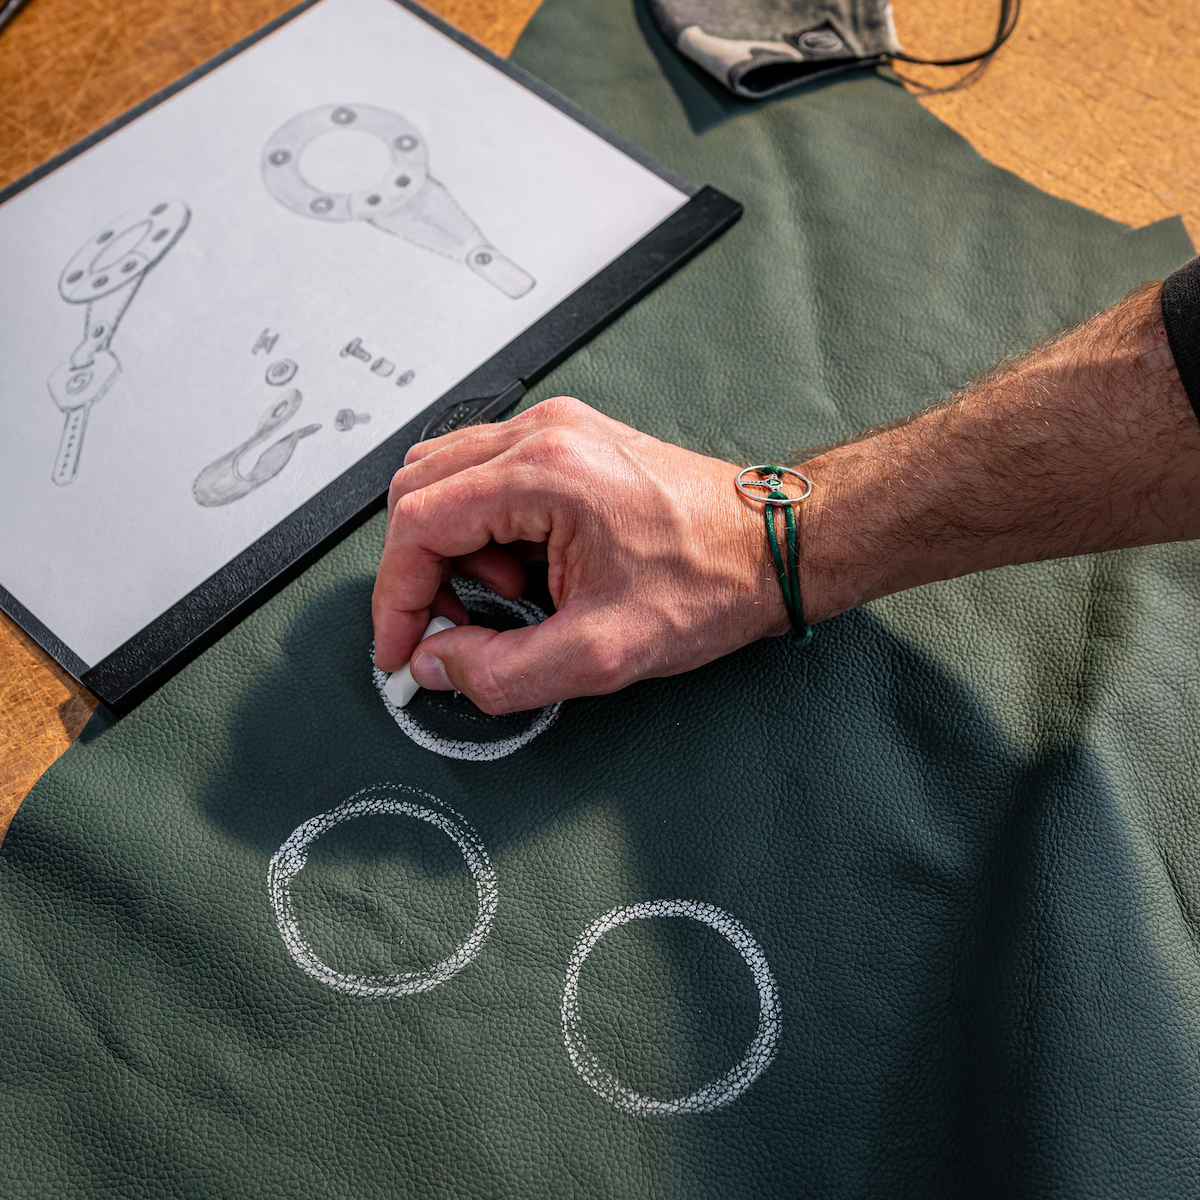 Drawing shapes on green upholstery leather